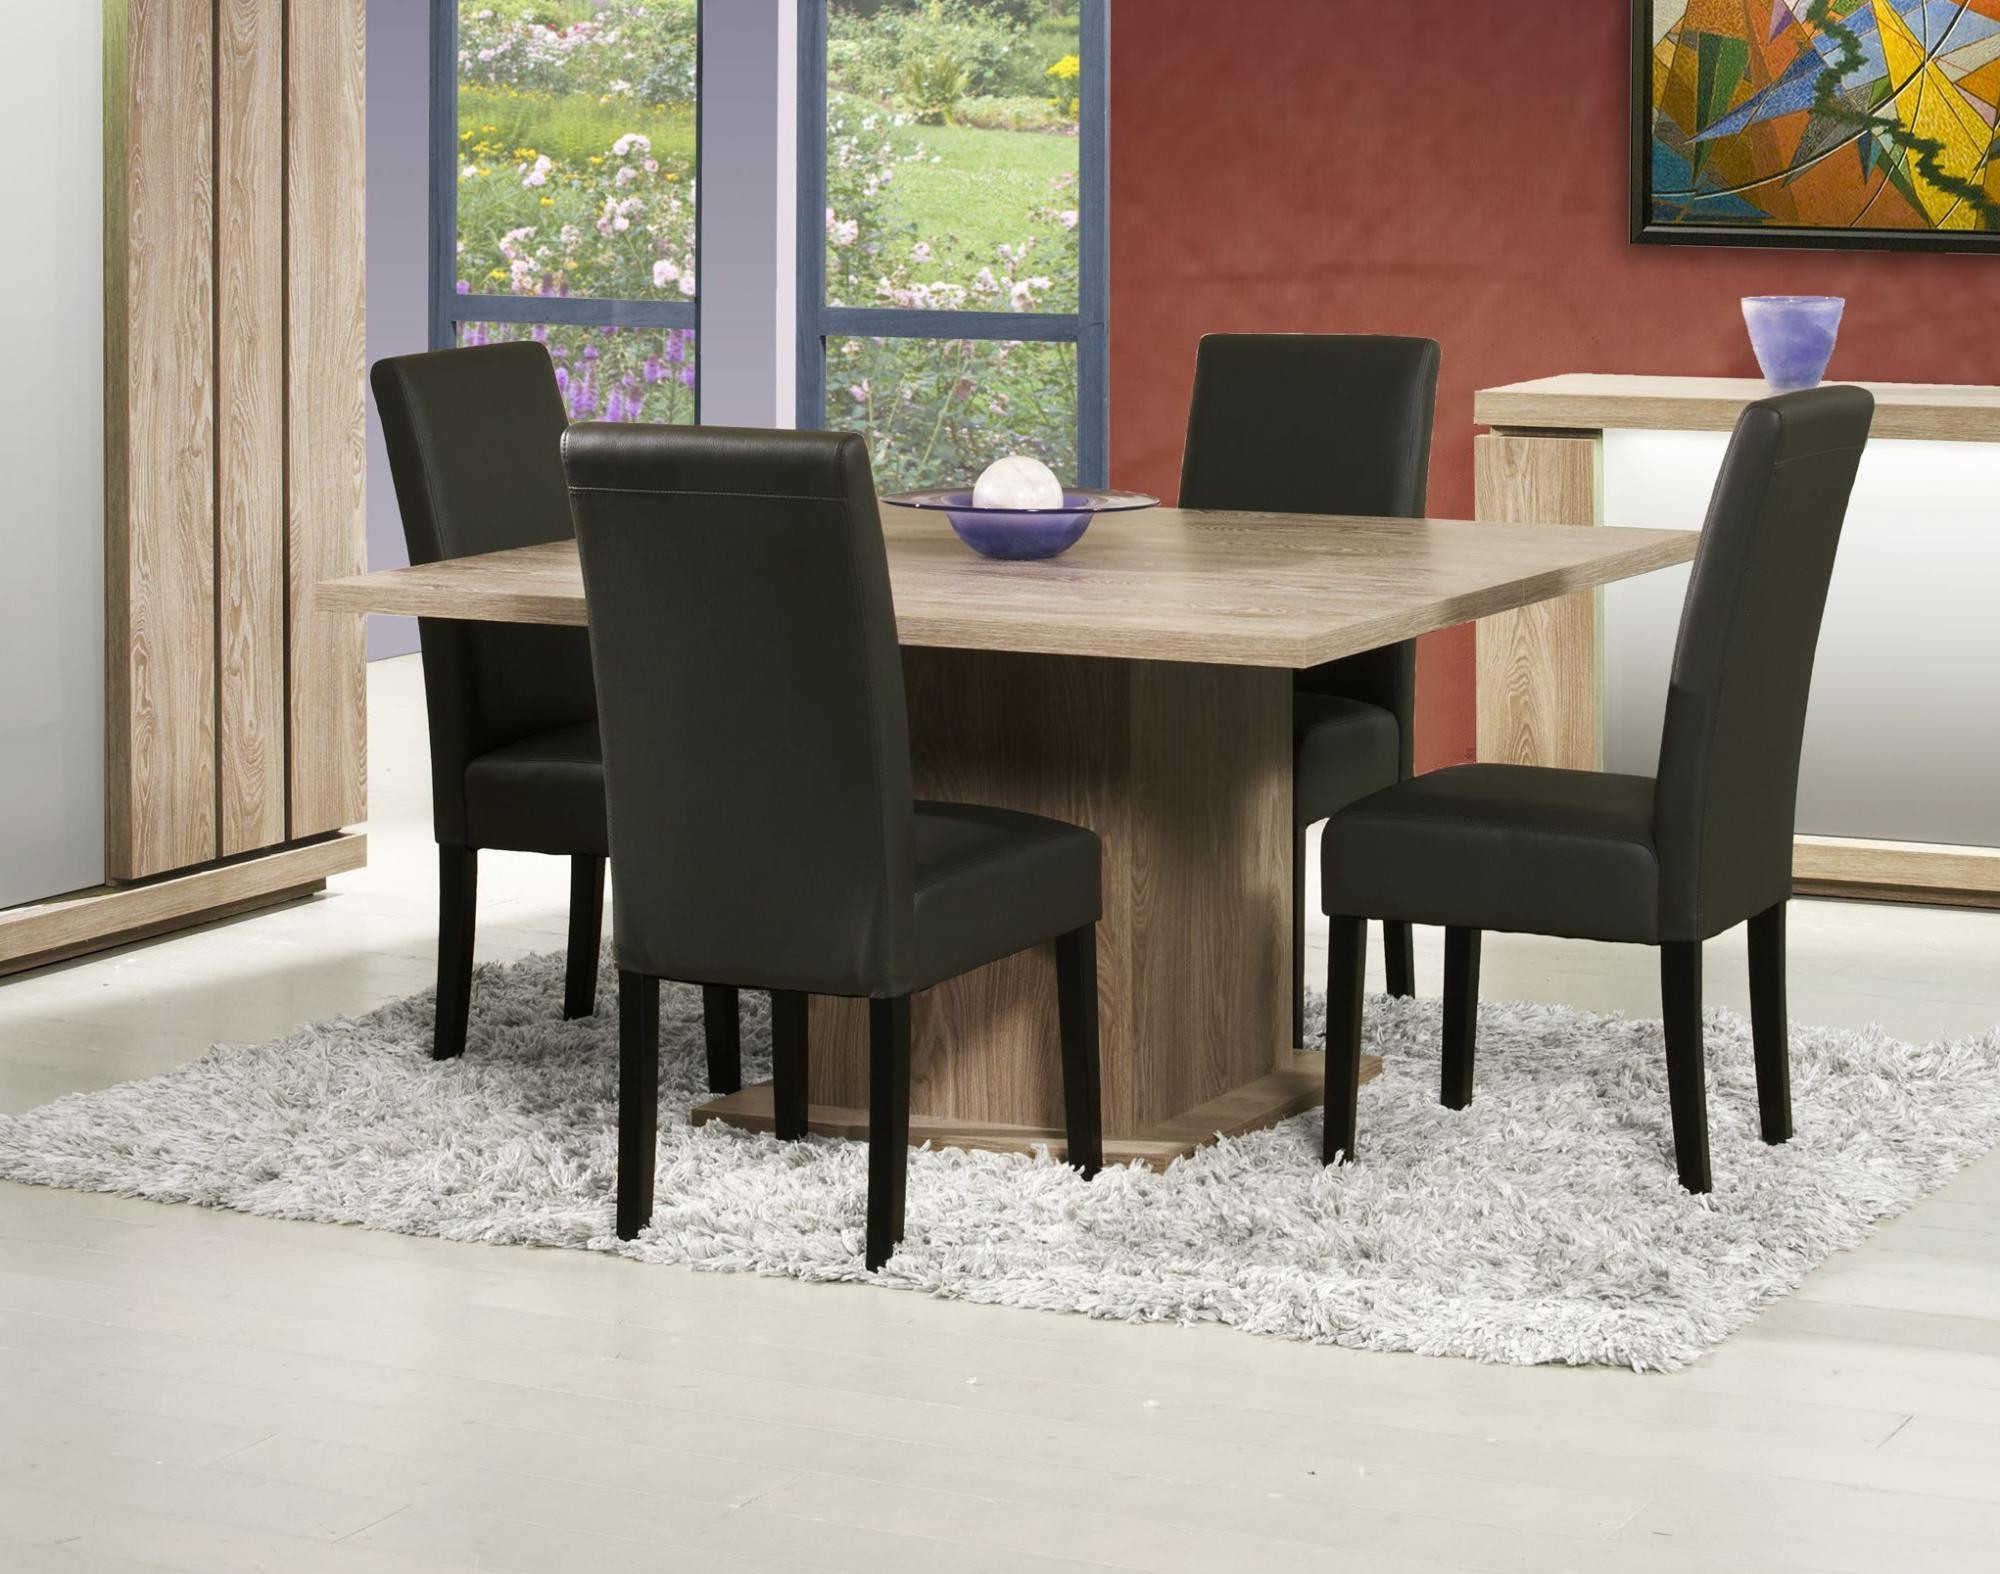 table de cuisine carre avec rallonge cuisine id es de d coration de maison 56lggl9l30. Black Bedroom Furniture Sets. Home Design Ideas